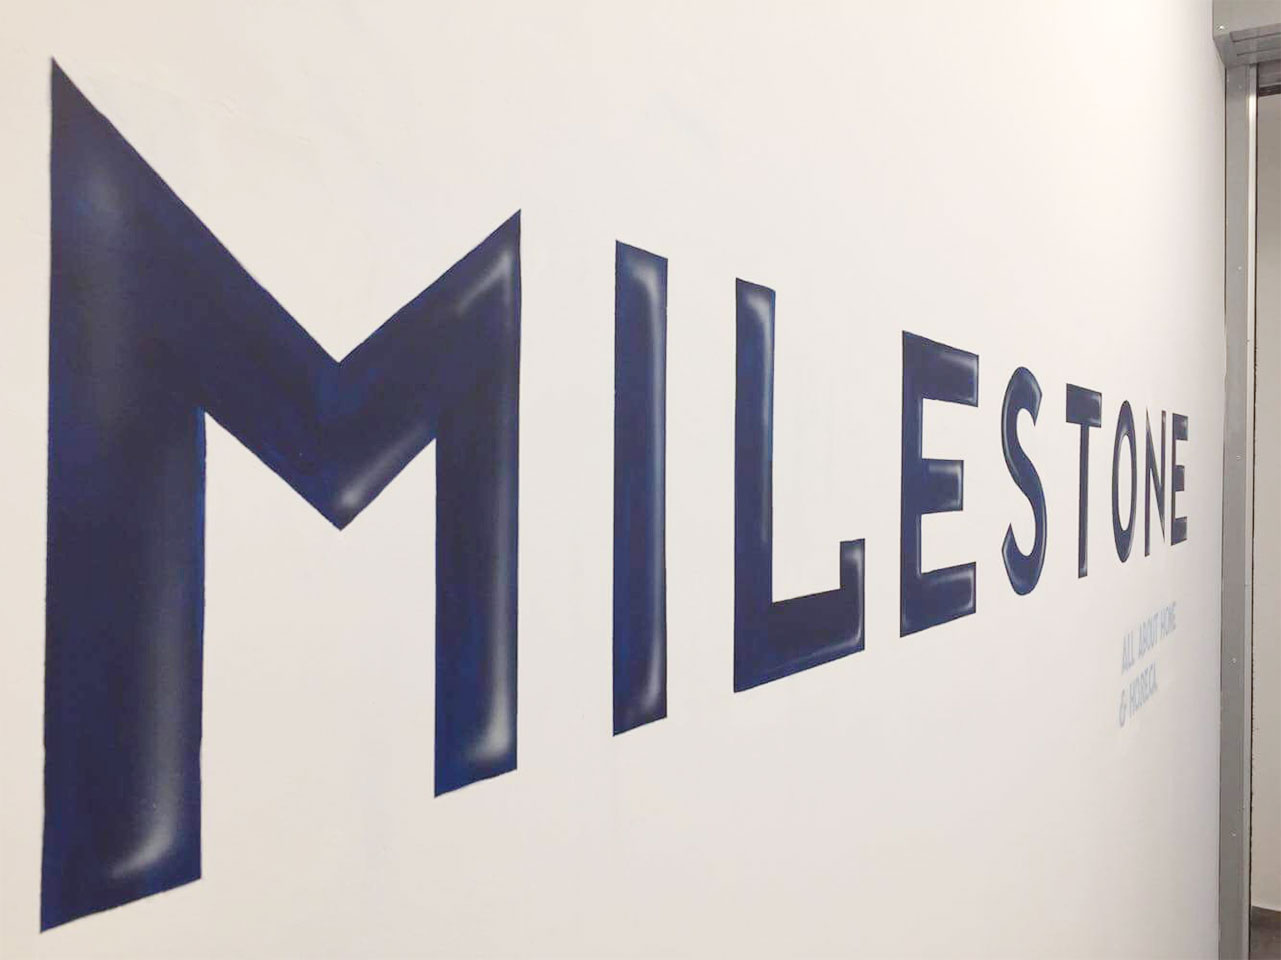 Milestone headquarters decoration photo